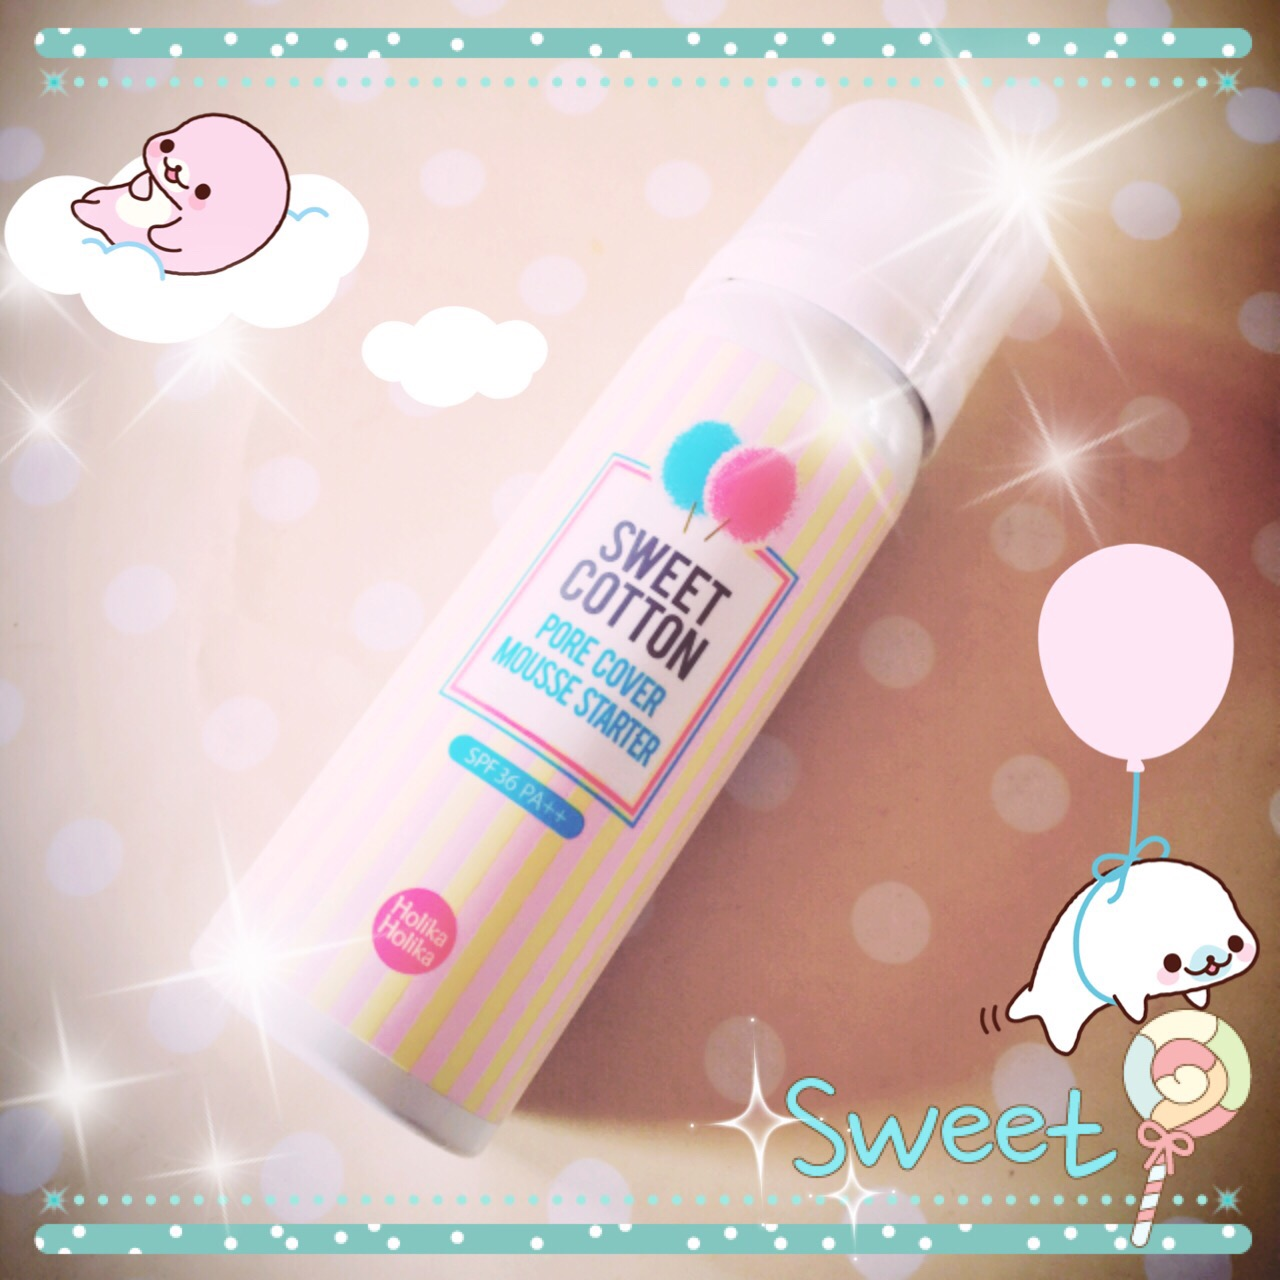 Holika Holika Sweet Cotton Pore Cover Mousse Starter